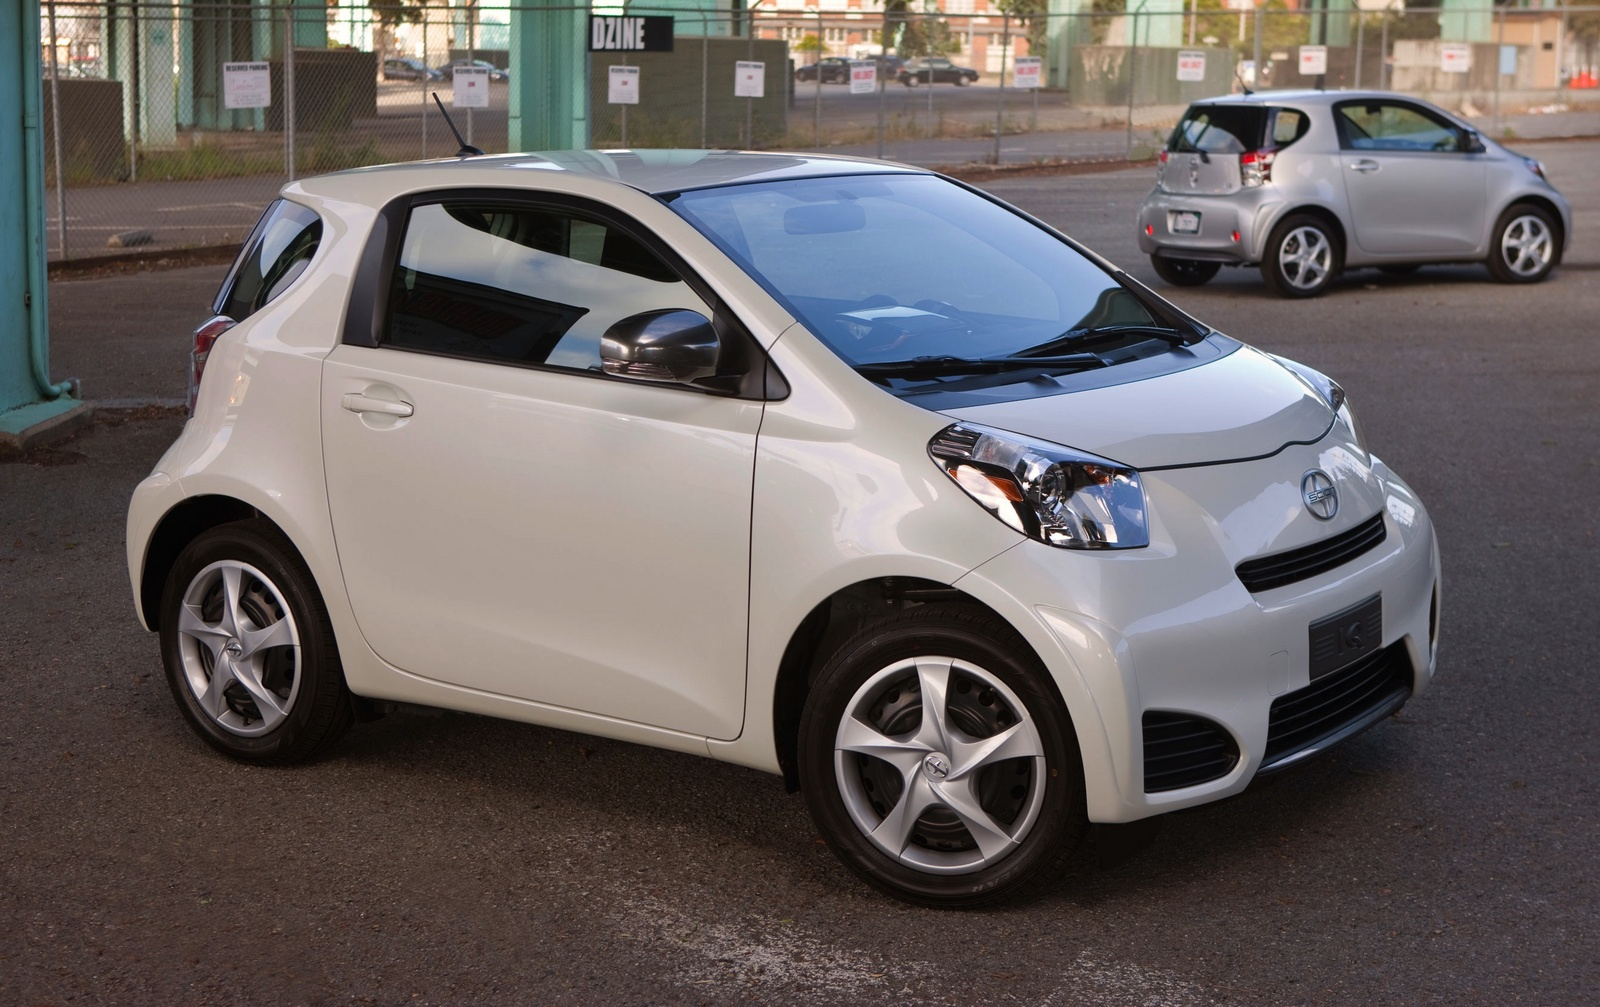 10 Most Affordable Cars Of 2014 Comparison For Budget Conscious